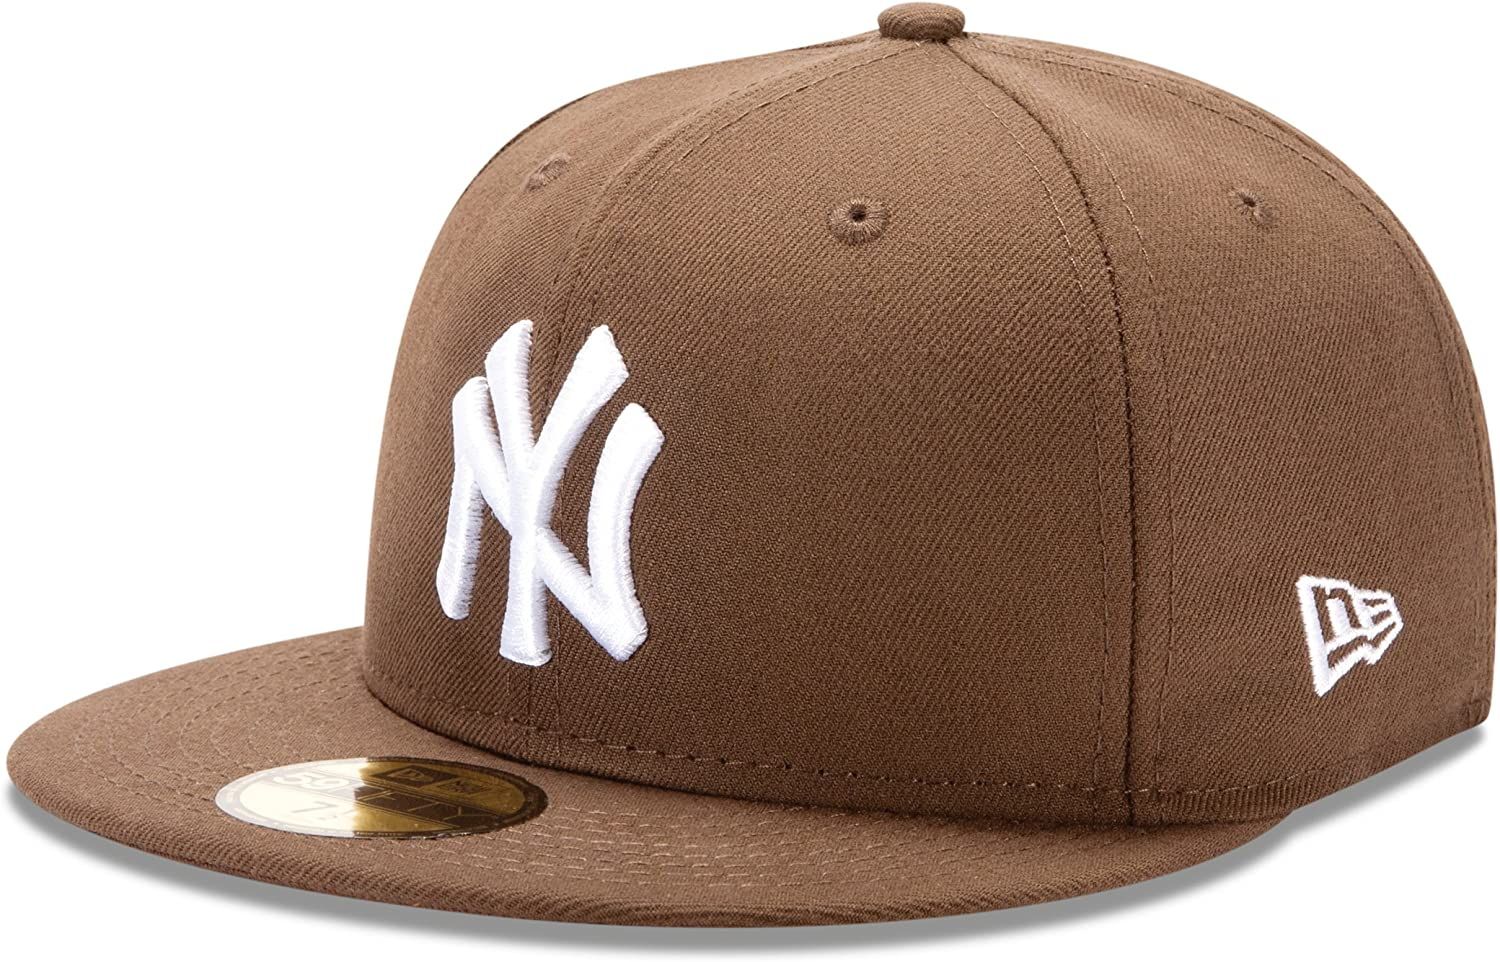 NEW ERA NEW YORK YANKEES FITTED HAT BASEBALL CAP 59FIFTY WHITE BROWN SZ 7-8